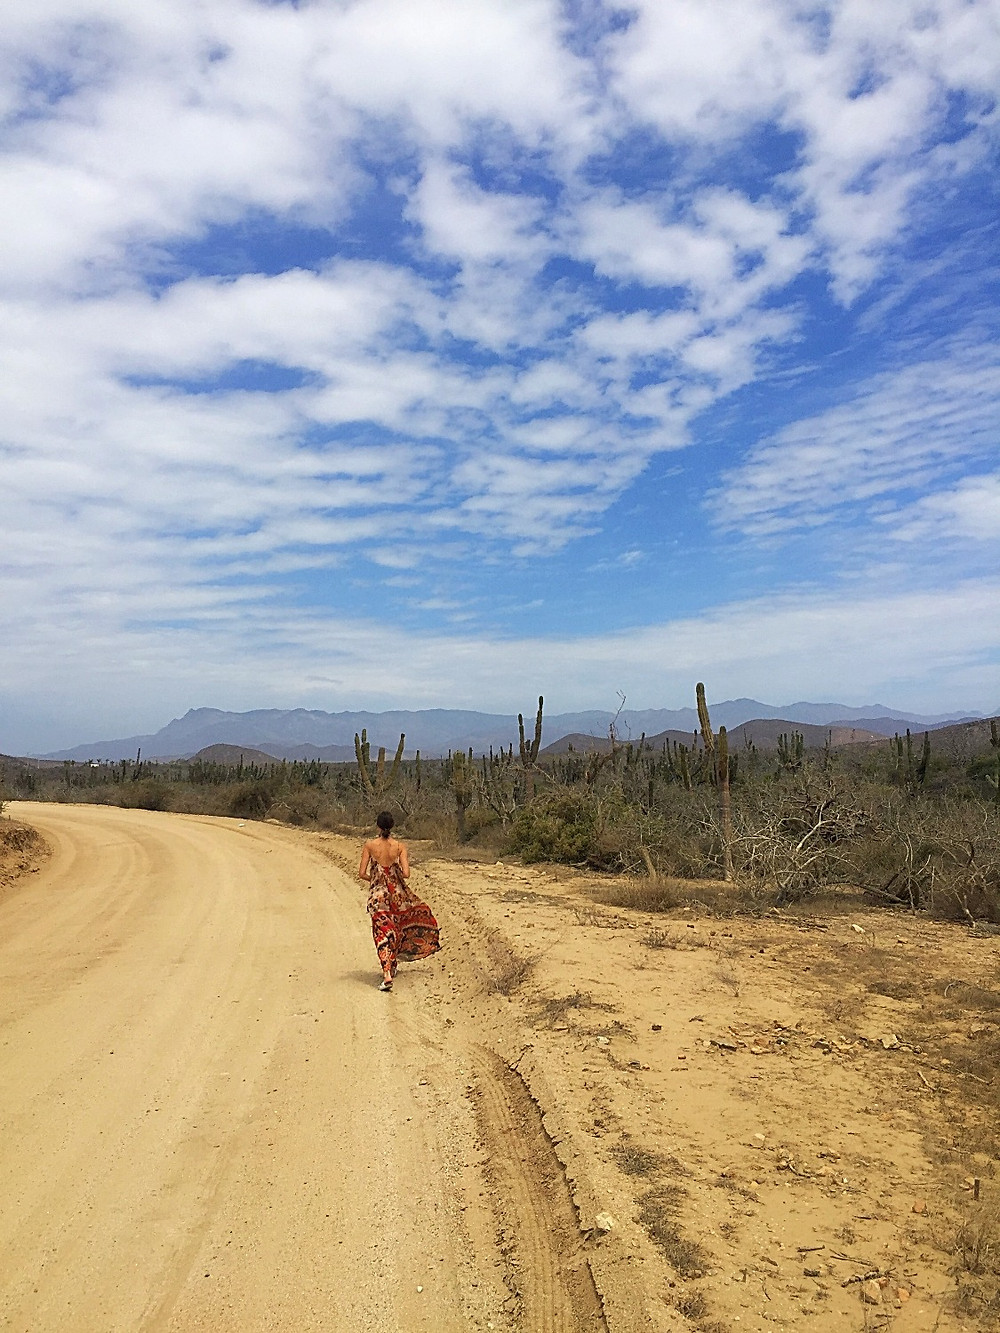 Life on the road in Todos Santos, Mexico